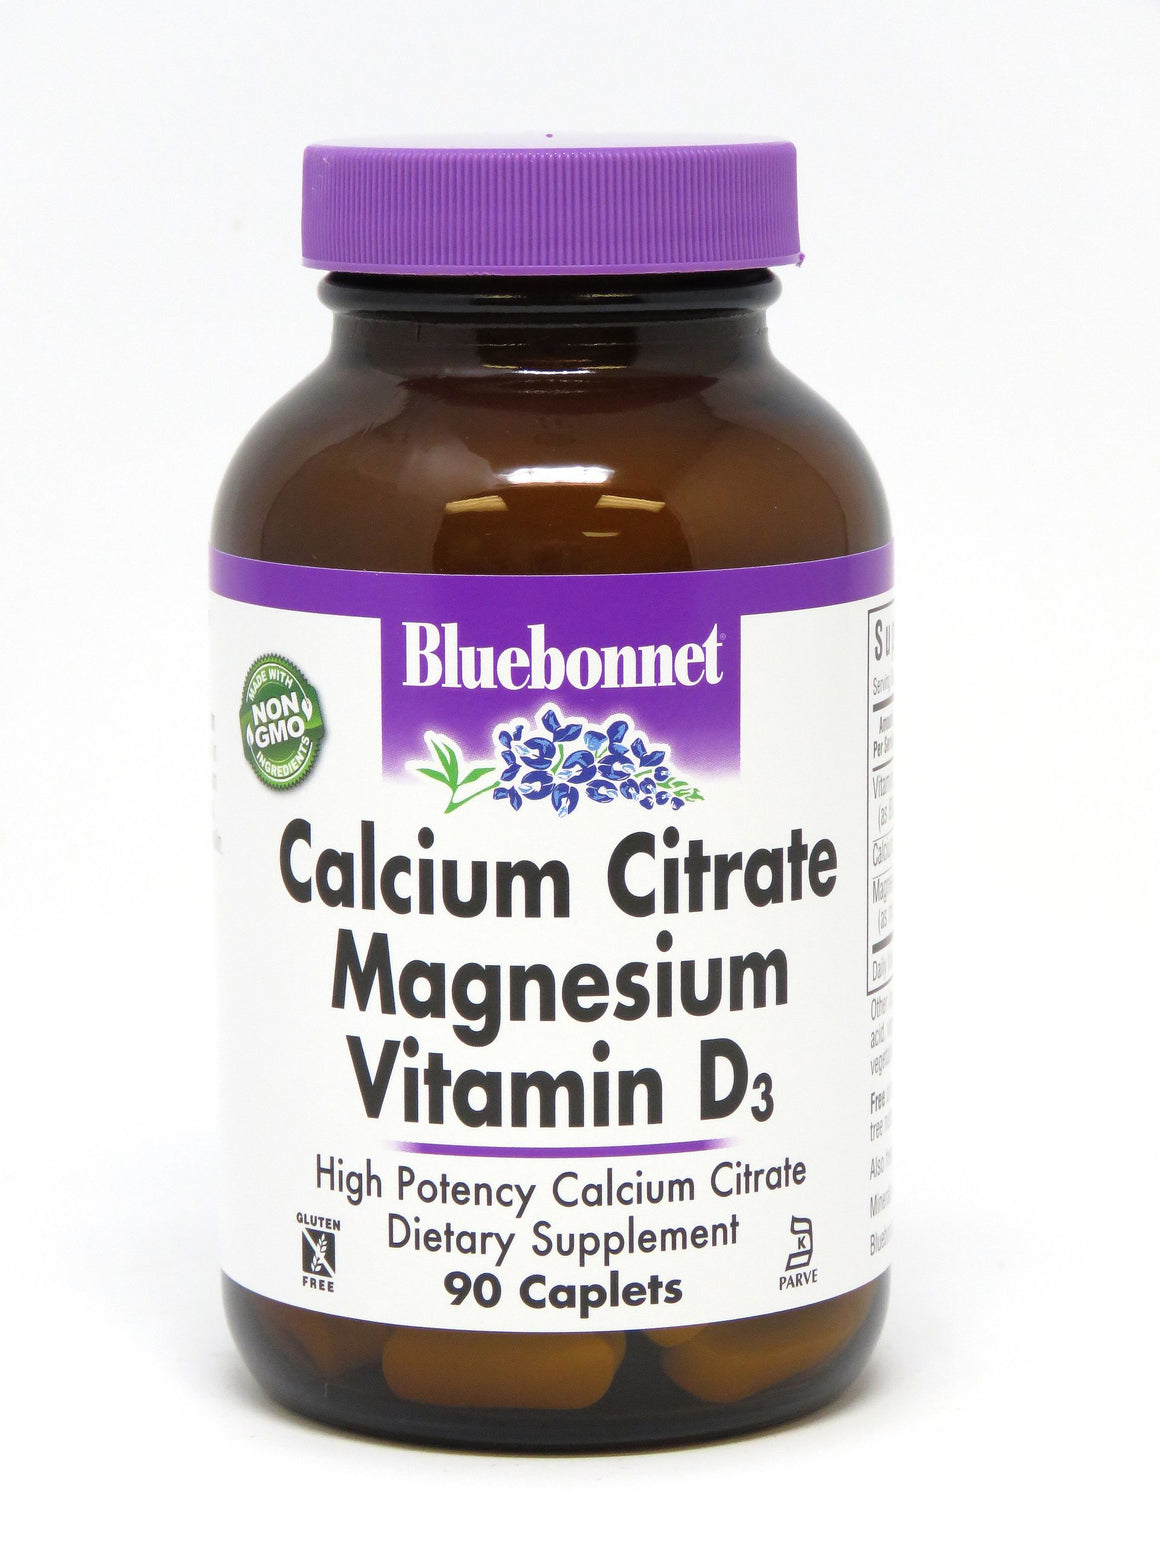 A bottle of Bluebonnet Calcium Citrate Magnesium Plus Vitamin D3